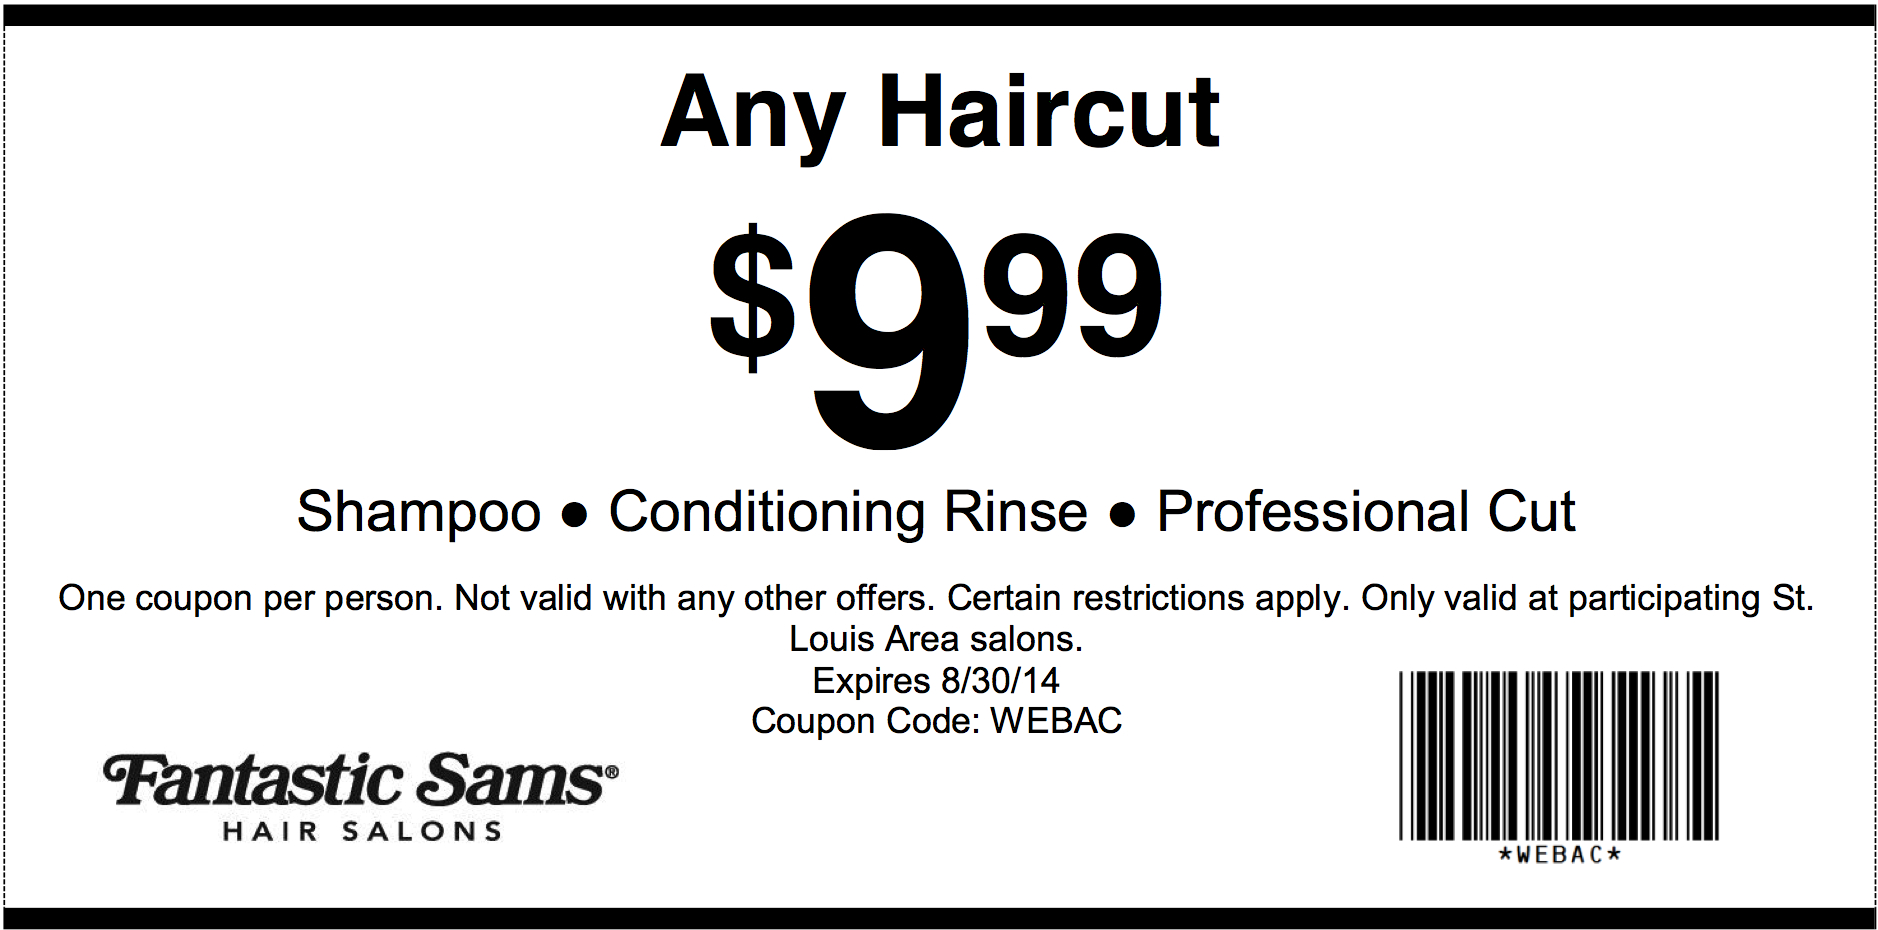 Fantastic Sams Printable Coupons Dec 2018 : Beaver Coupons - Supercuts Free Haircut Printable Coupon